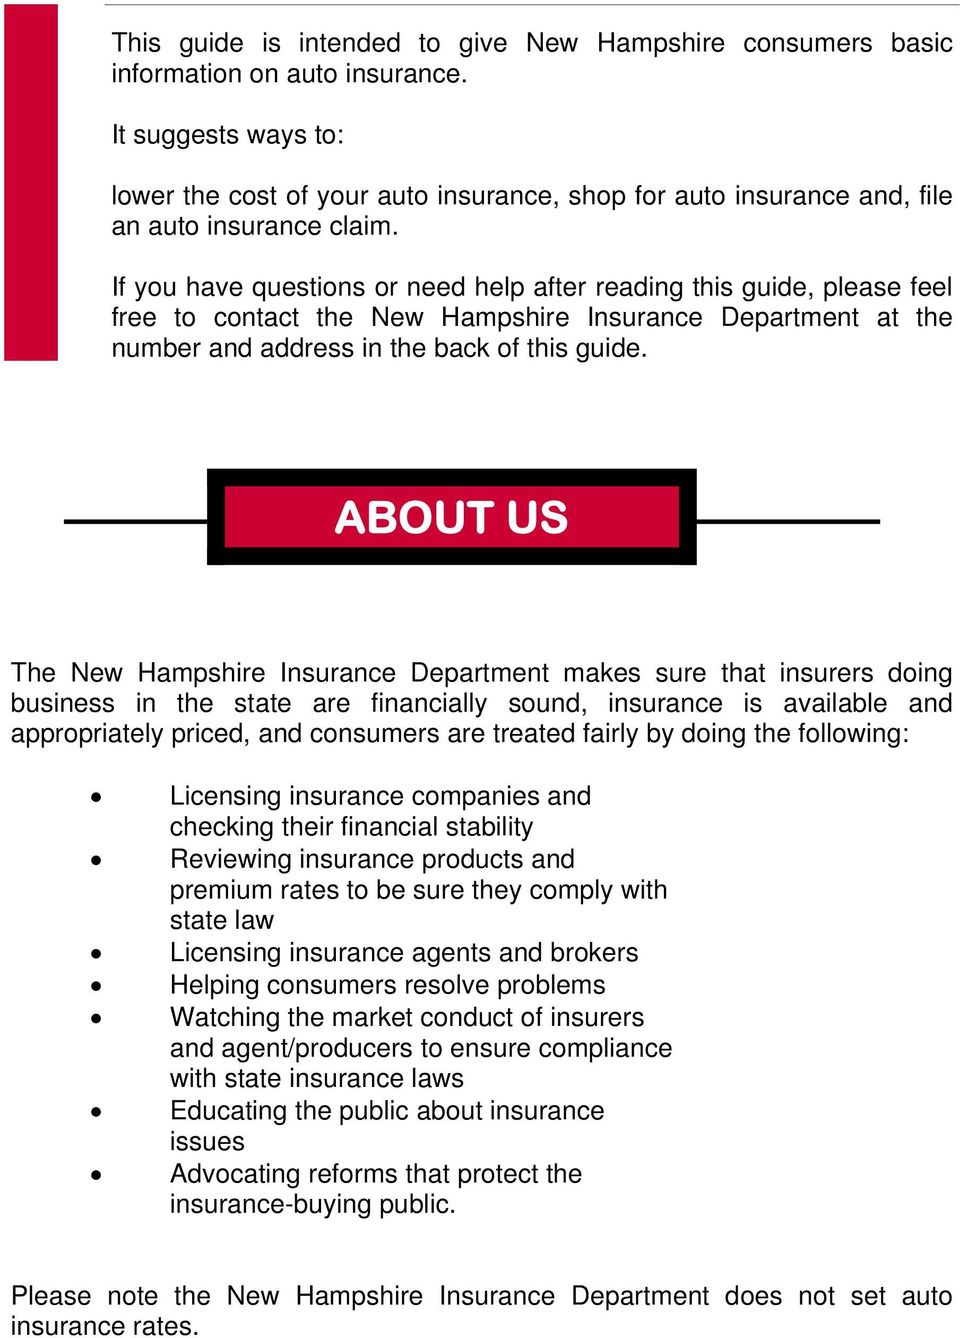 If you have questions or need help after reading this guide, please feel free to contact the New Hampshire Insurance Department at the number and address in the back of this guide.